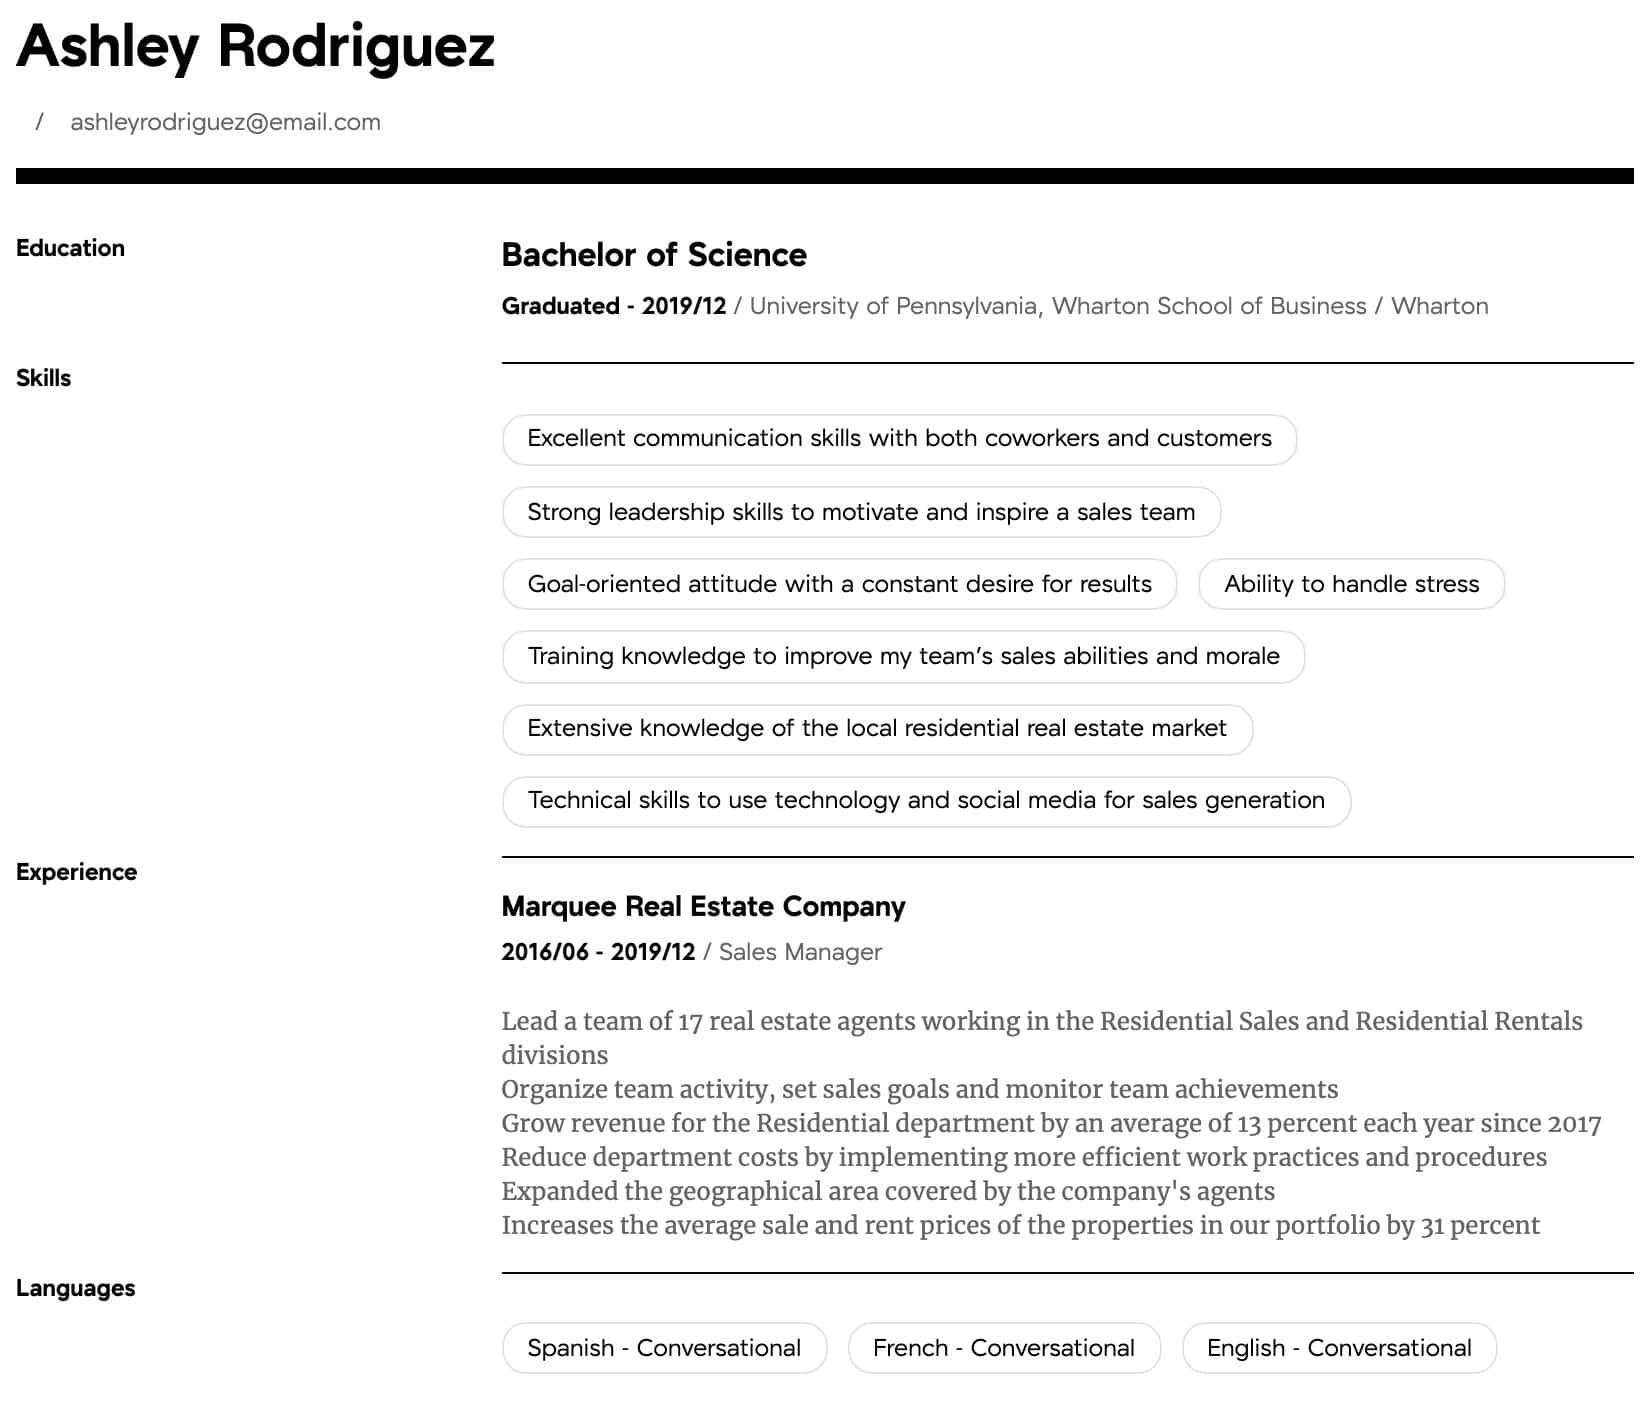 manager resume samples all experience levels knowledge management sample intermediate Resume Knowledge Management Resume Sample